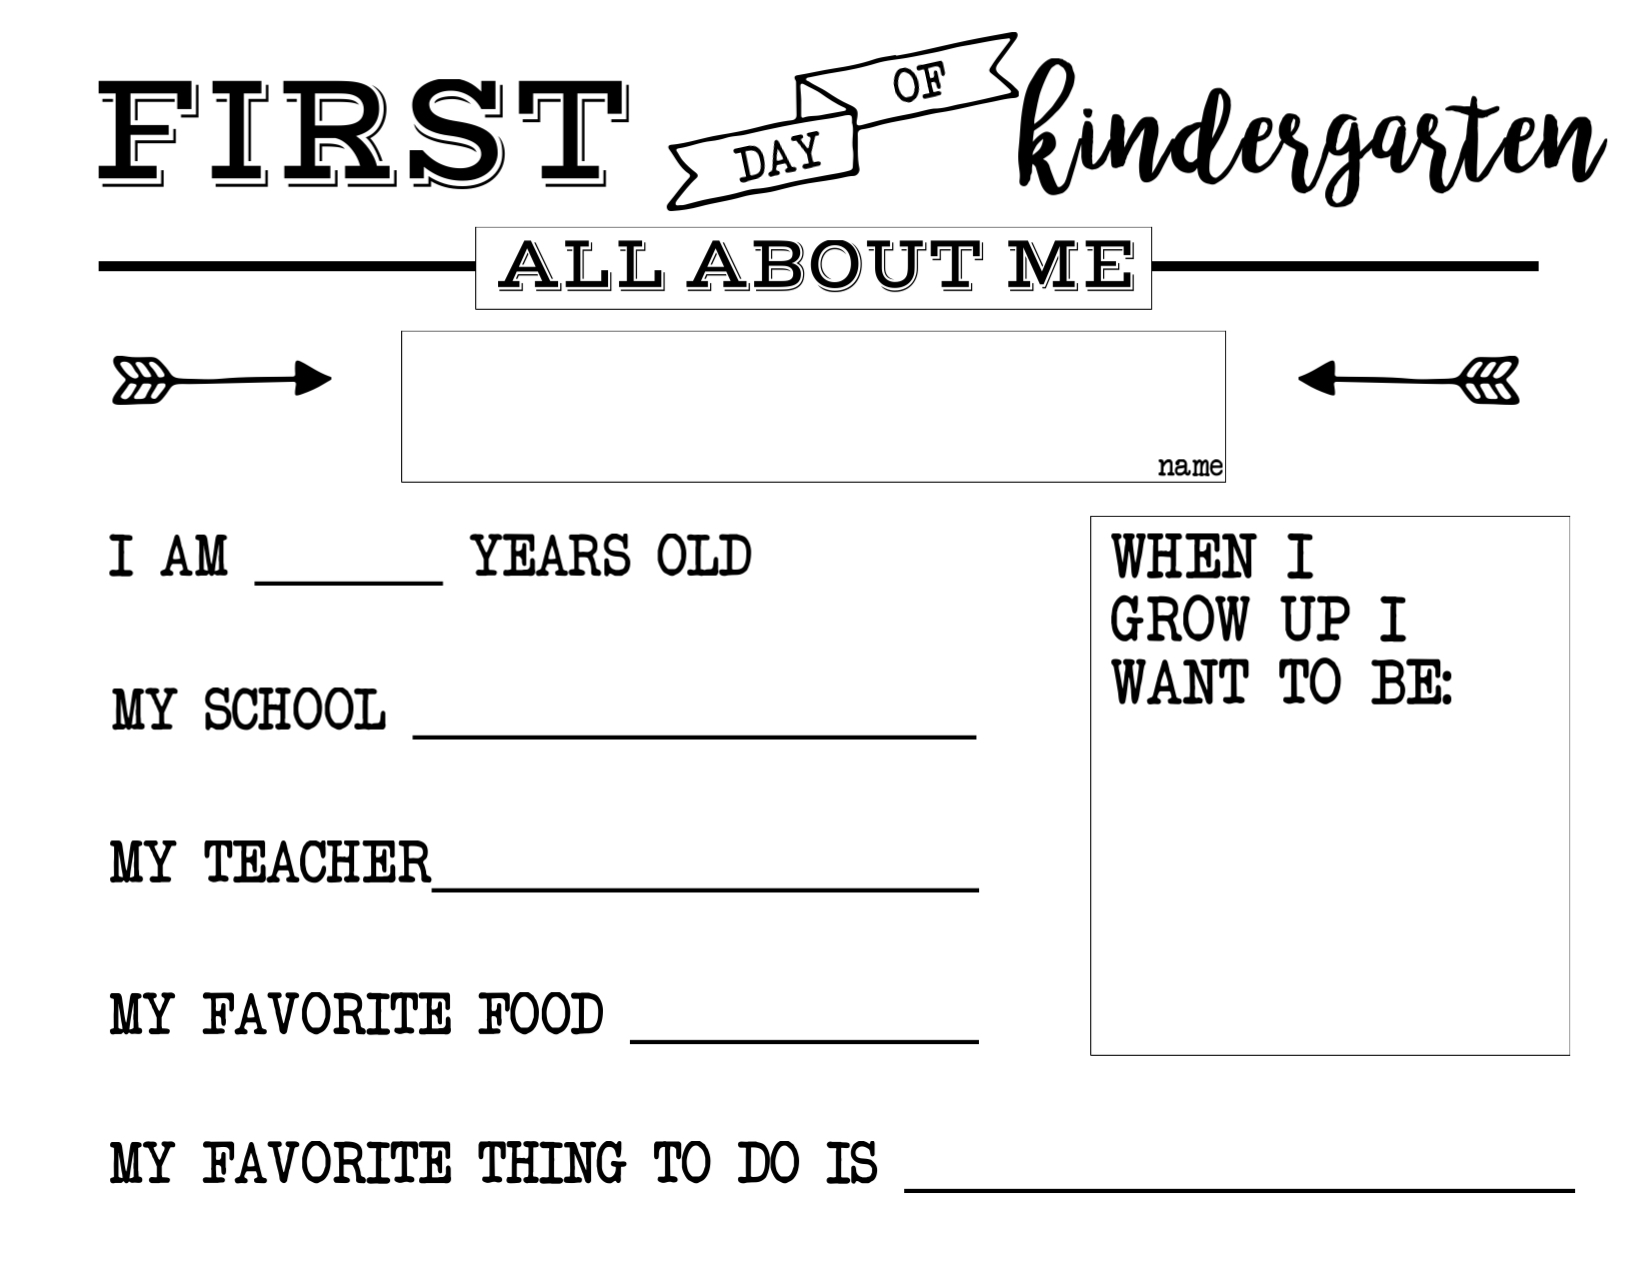 First Day Of School All About Me Sign Paper Trail Design